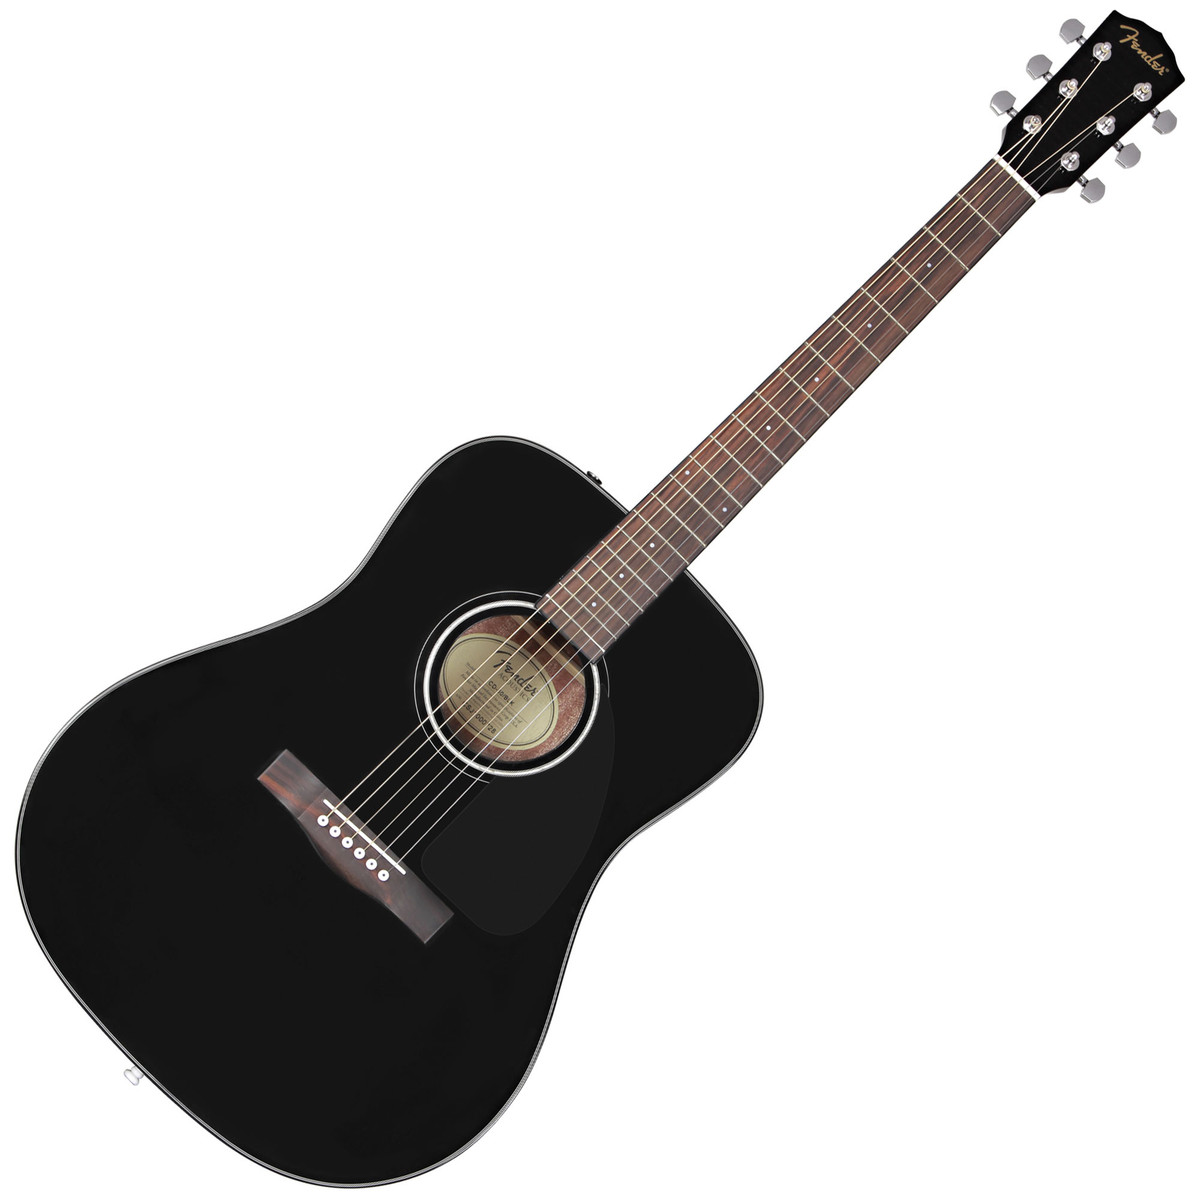 fender cd 60 guitare acoustique noir. Black Bedroom Furniture Sets. Home Design Ideas